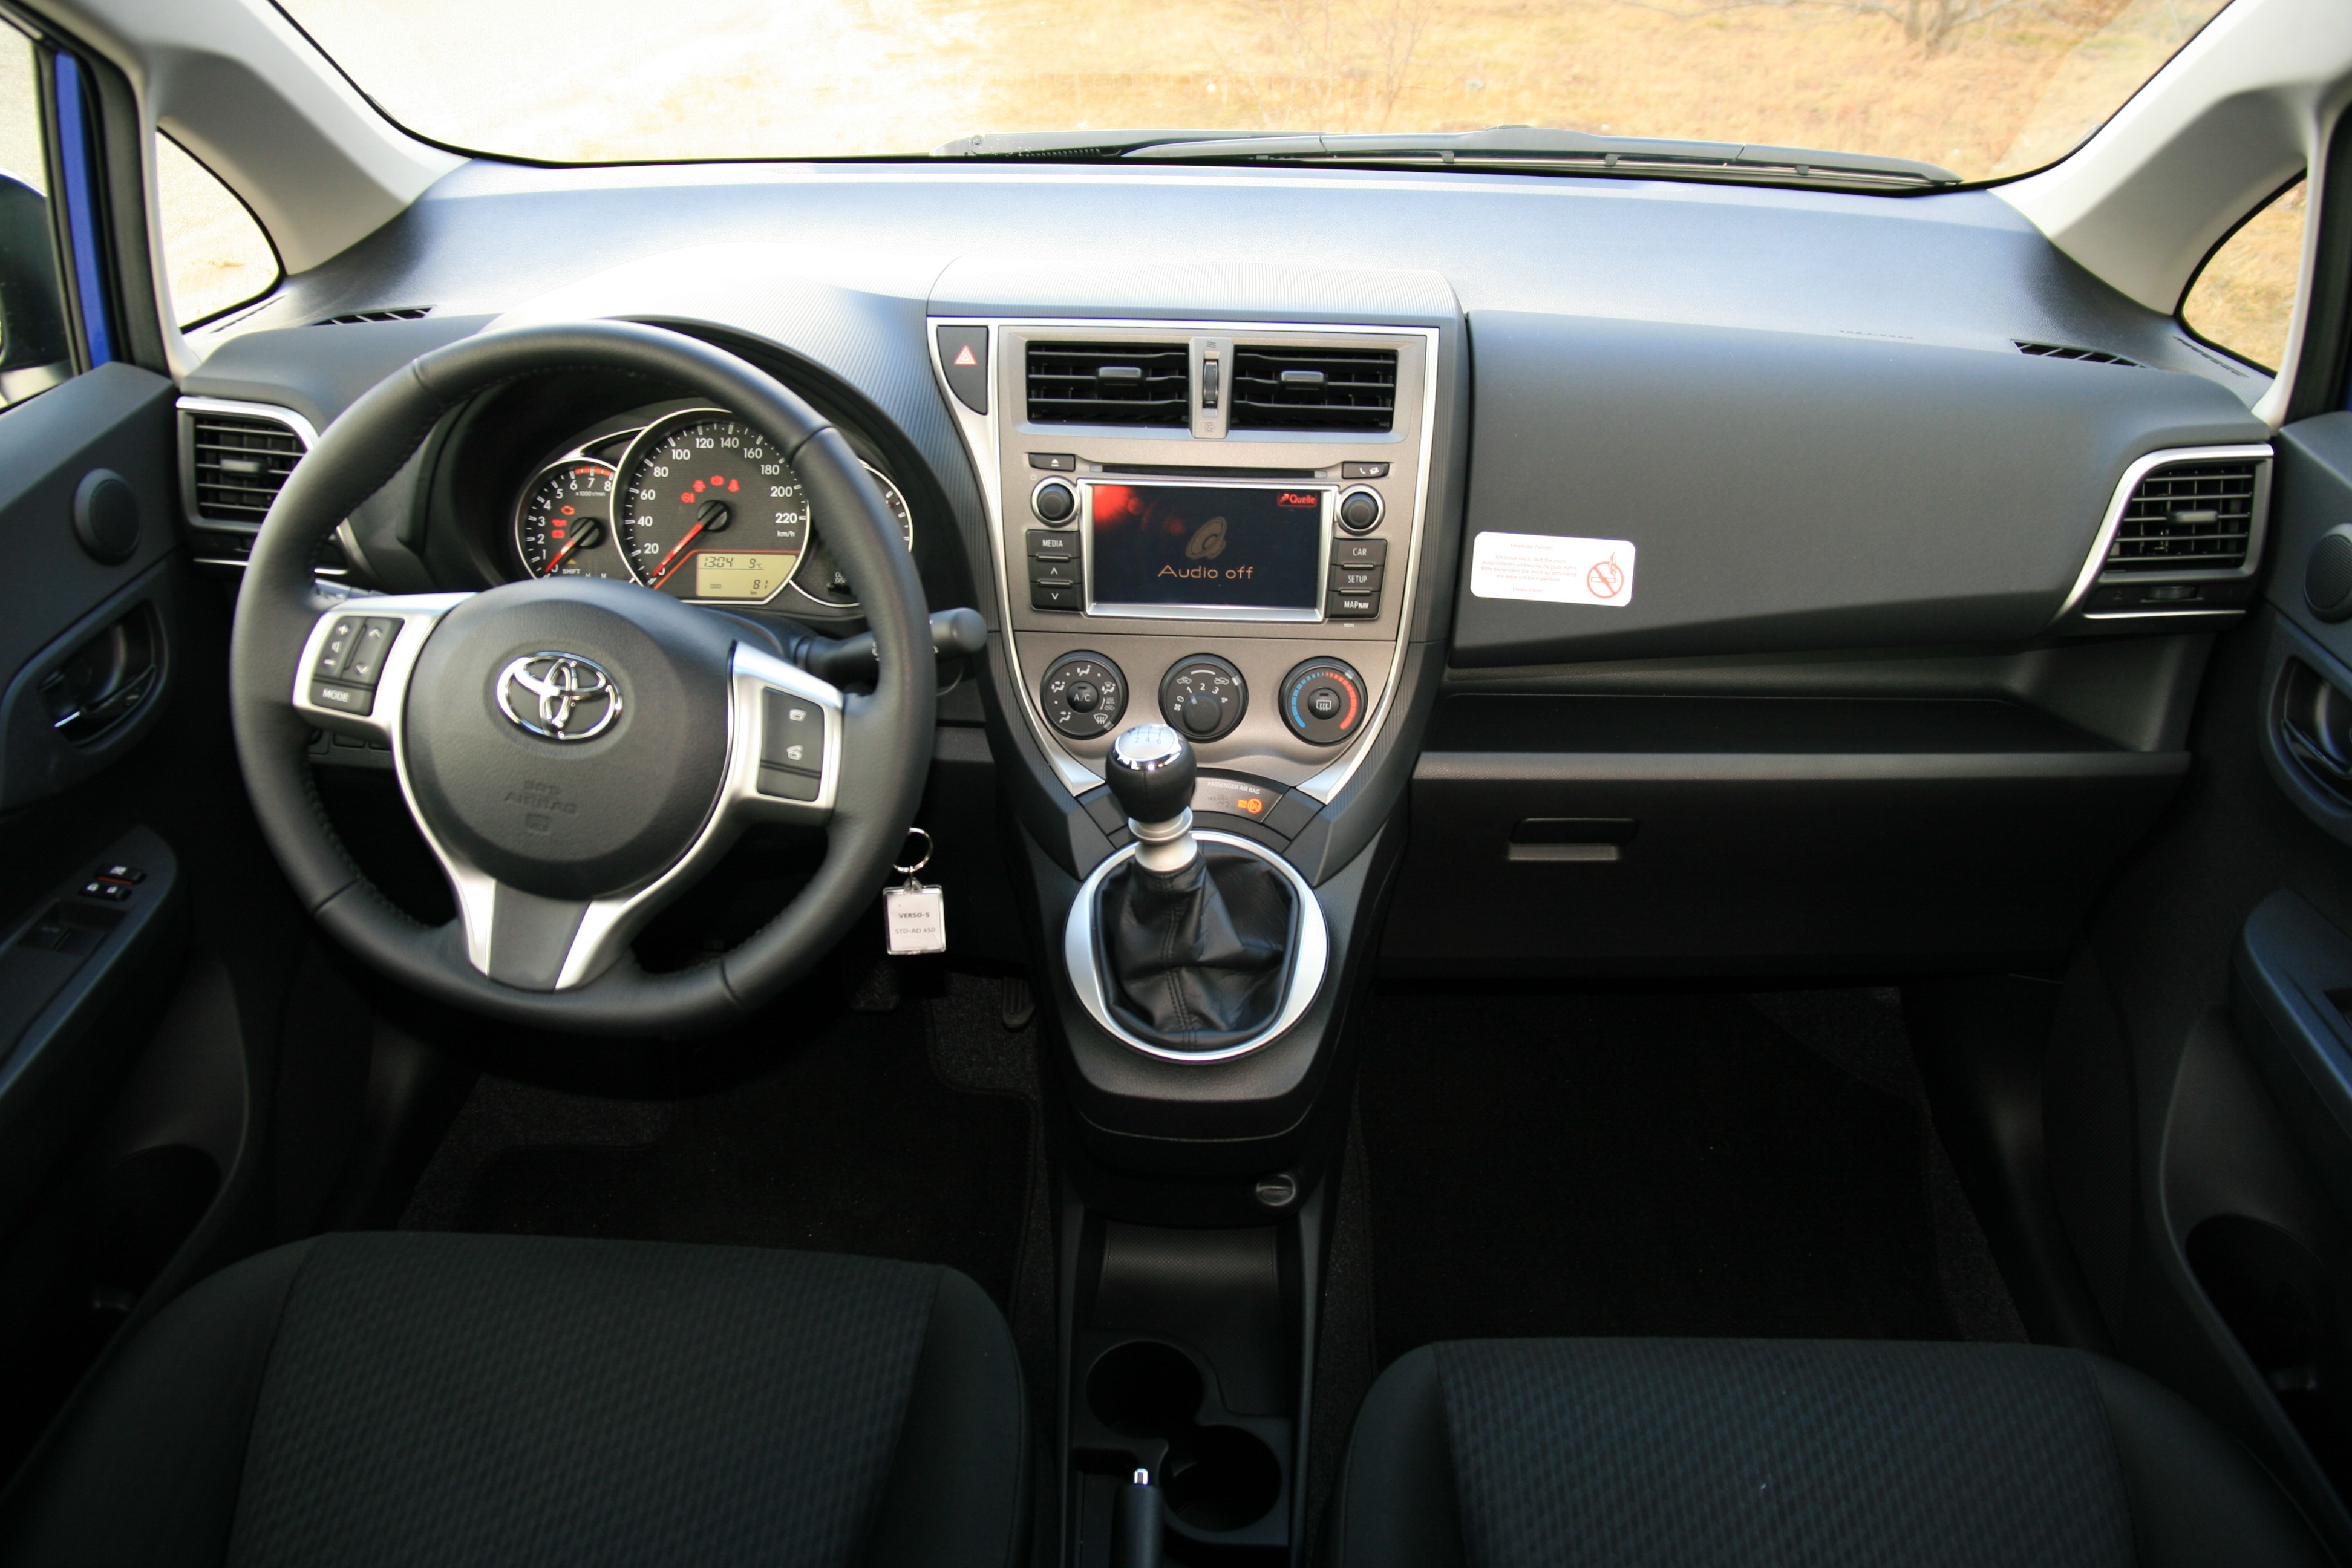 datei toyota verso s cockpit jpg wikipedia. Black Bedroom Furniture Sets. Home Design Ideas